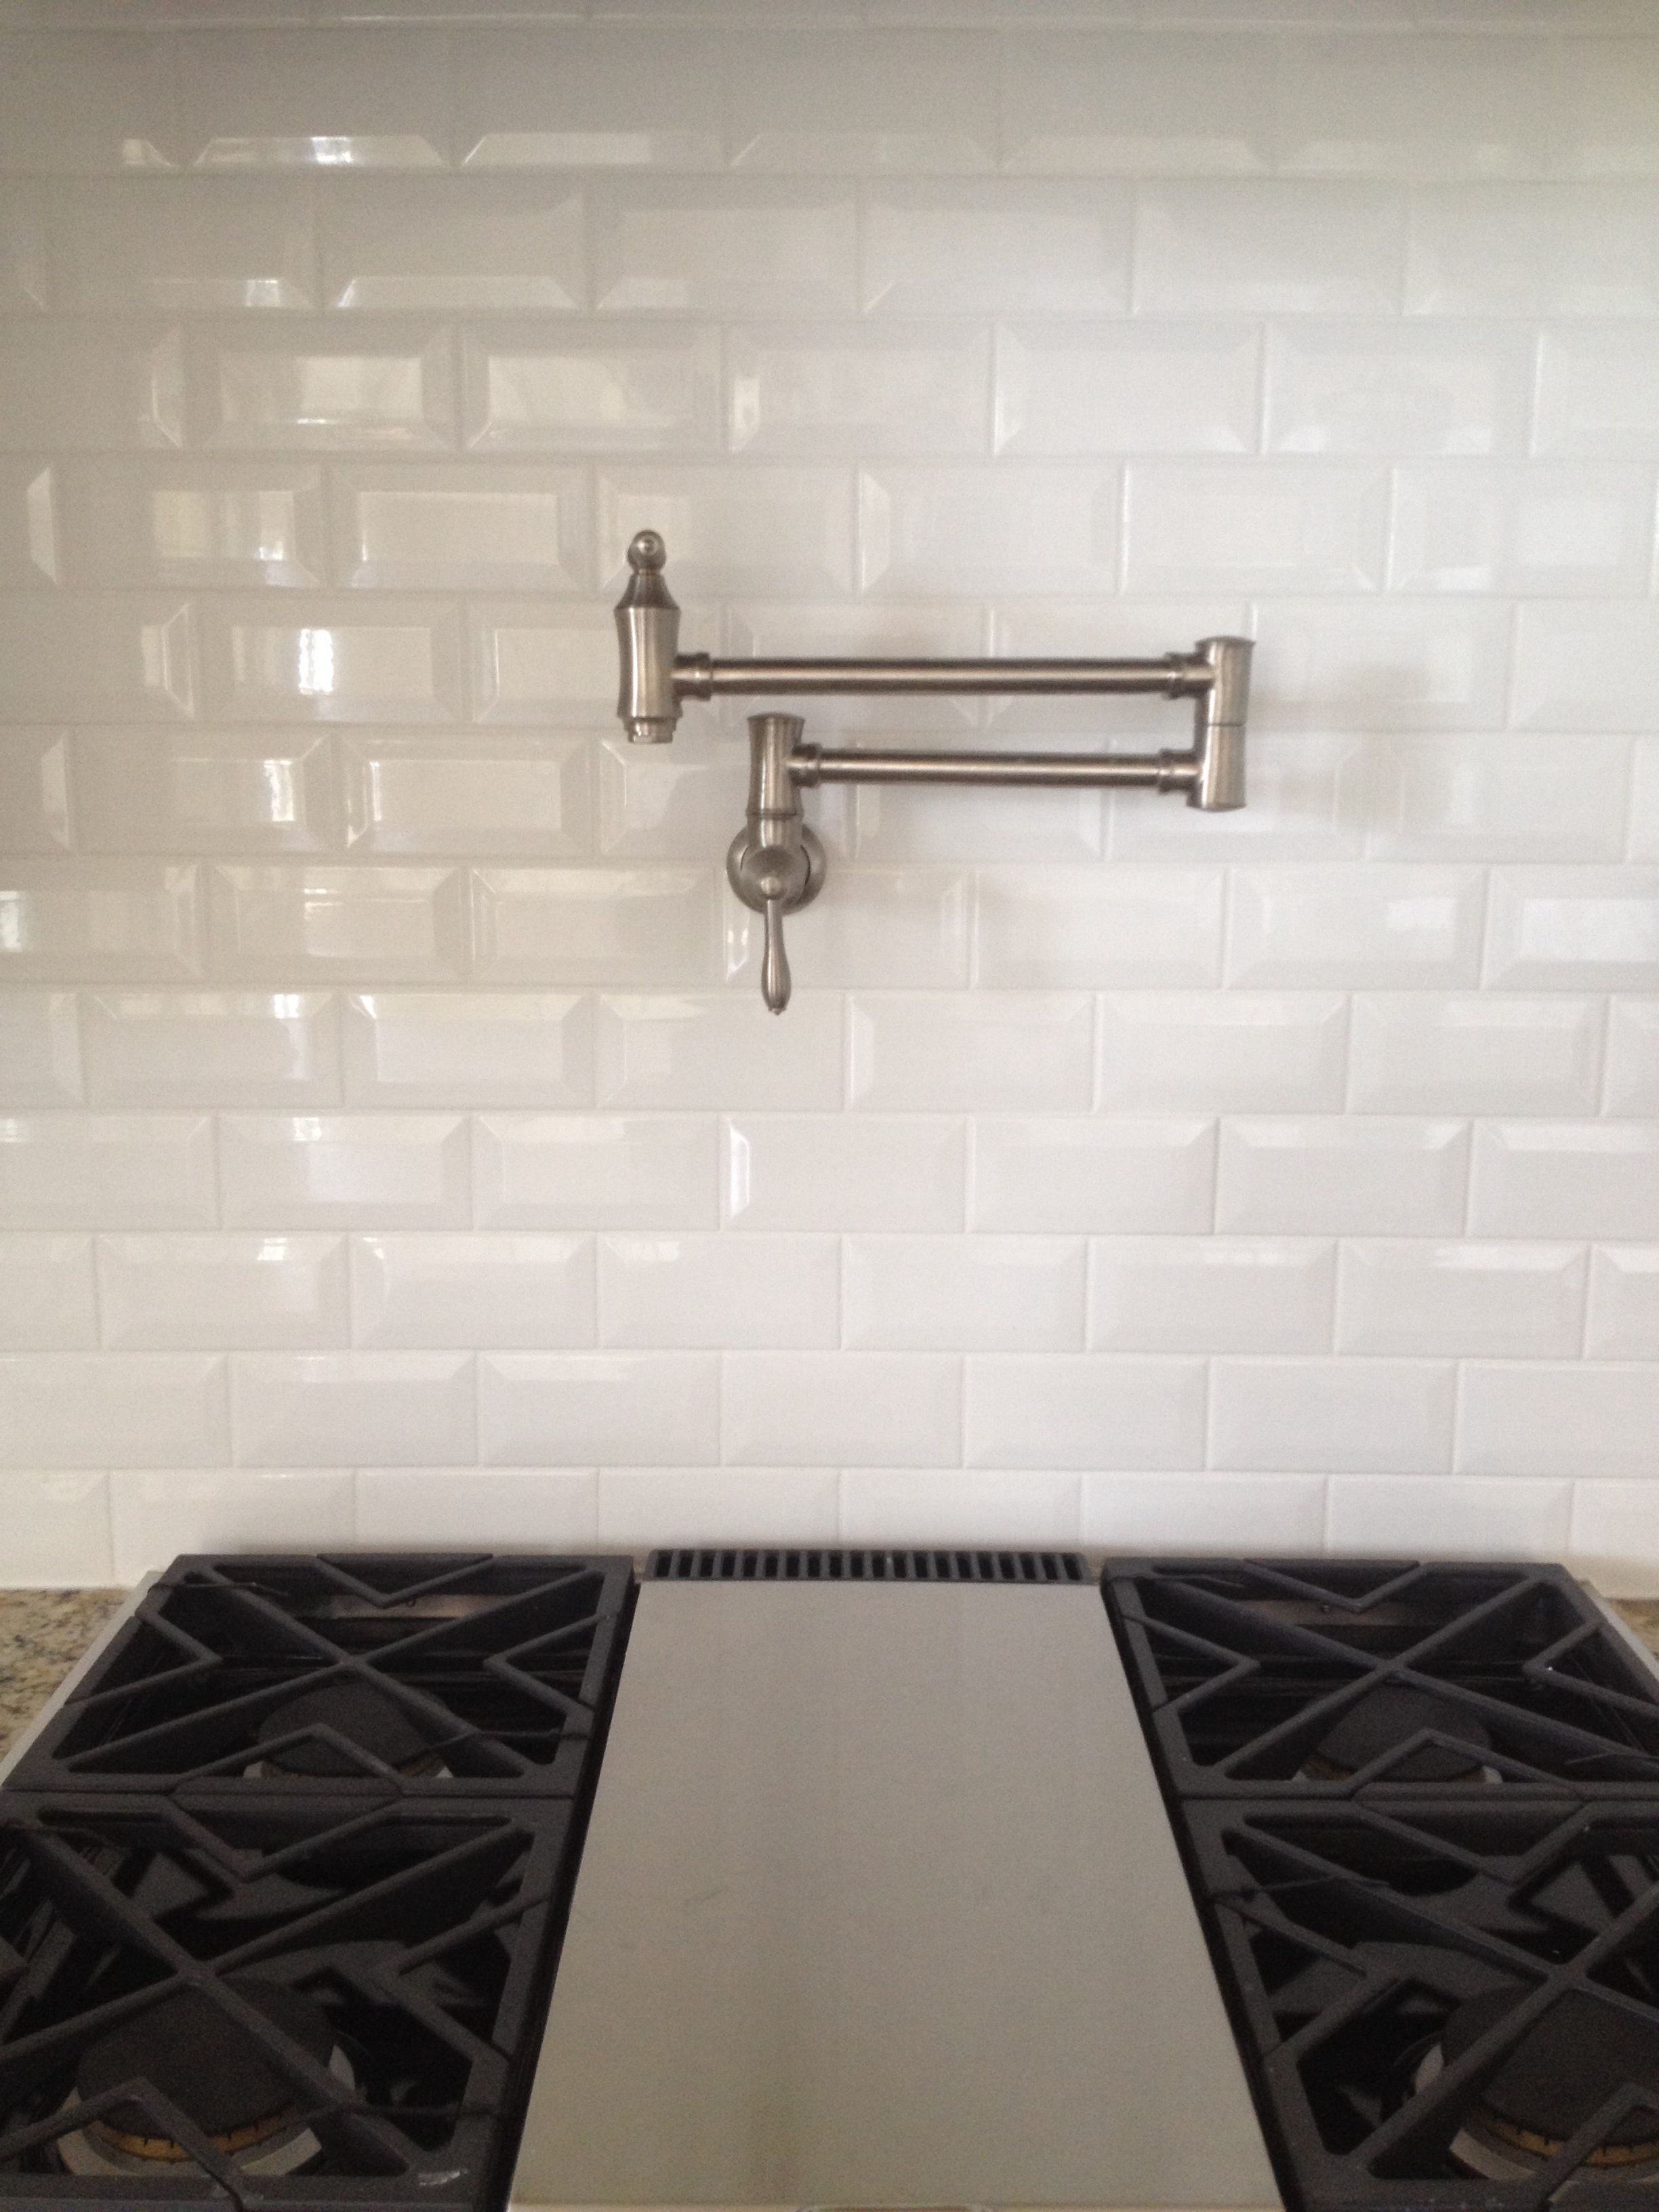 Dal tile ritten house bevel subway 3x6 arctic white glossy grout bright white